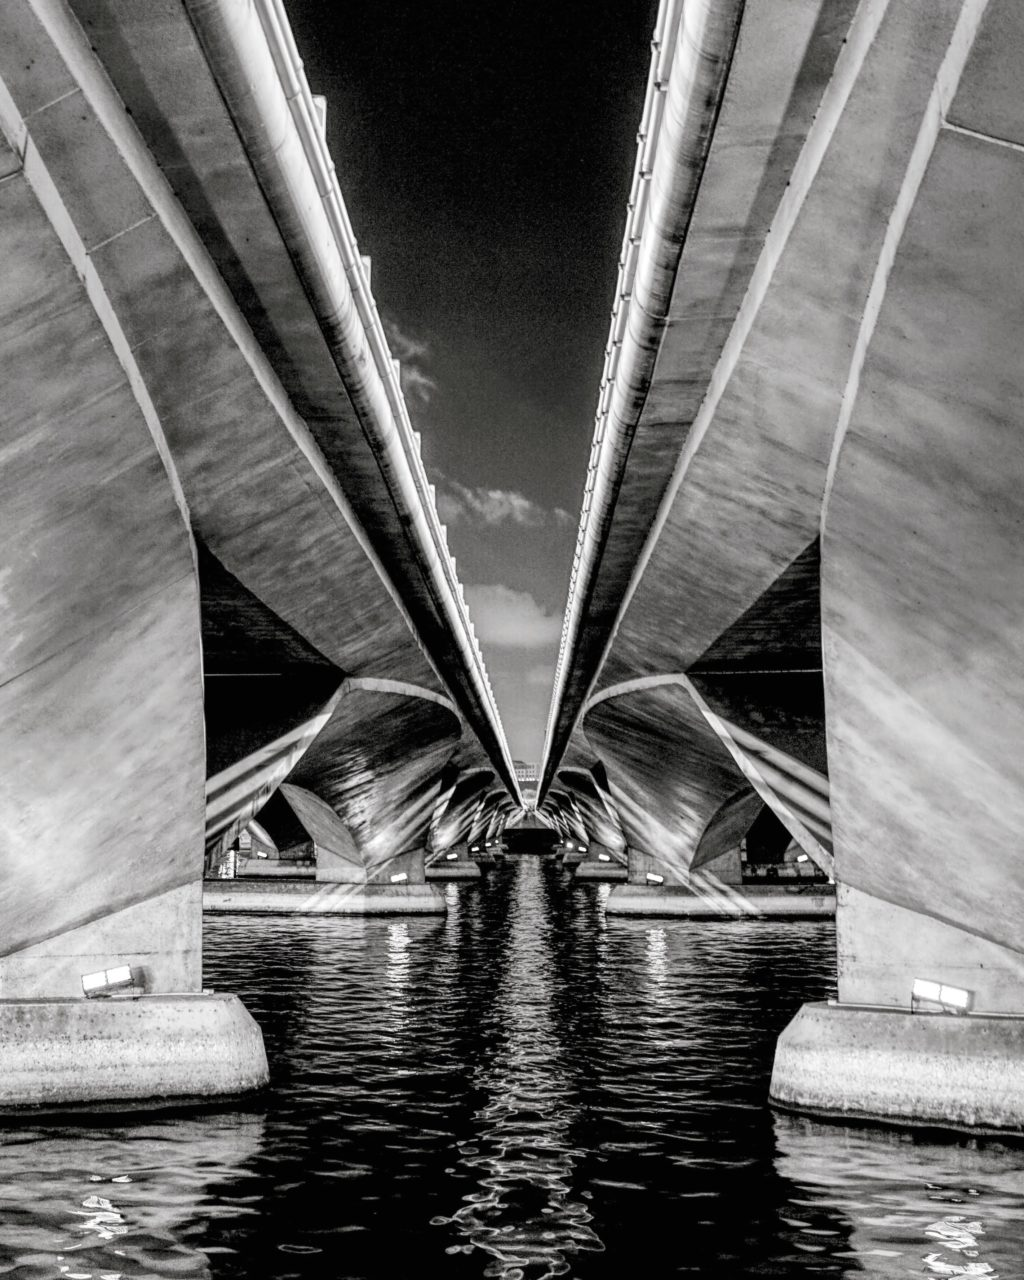 River and bridge in black and white